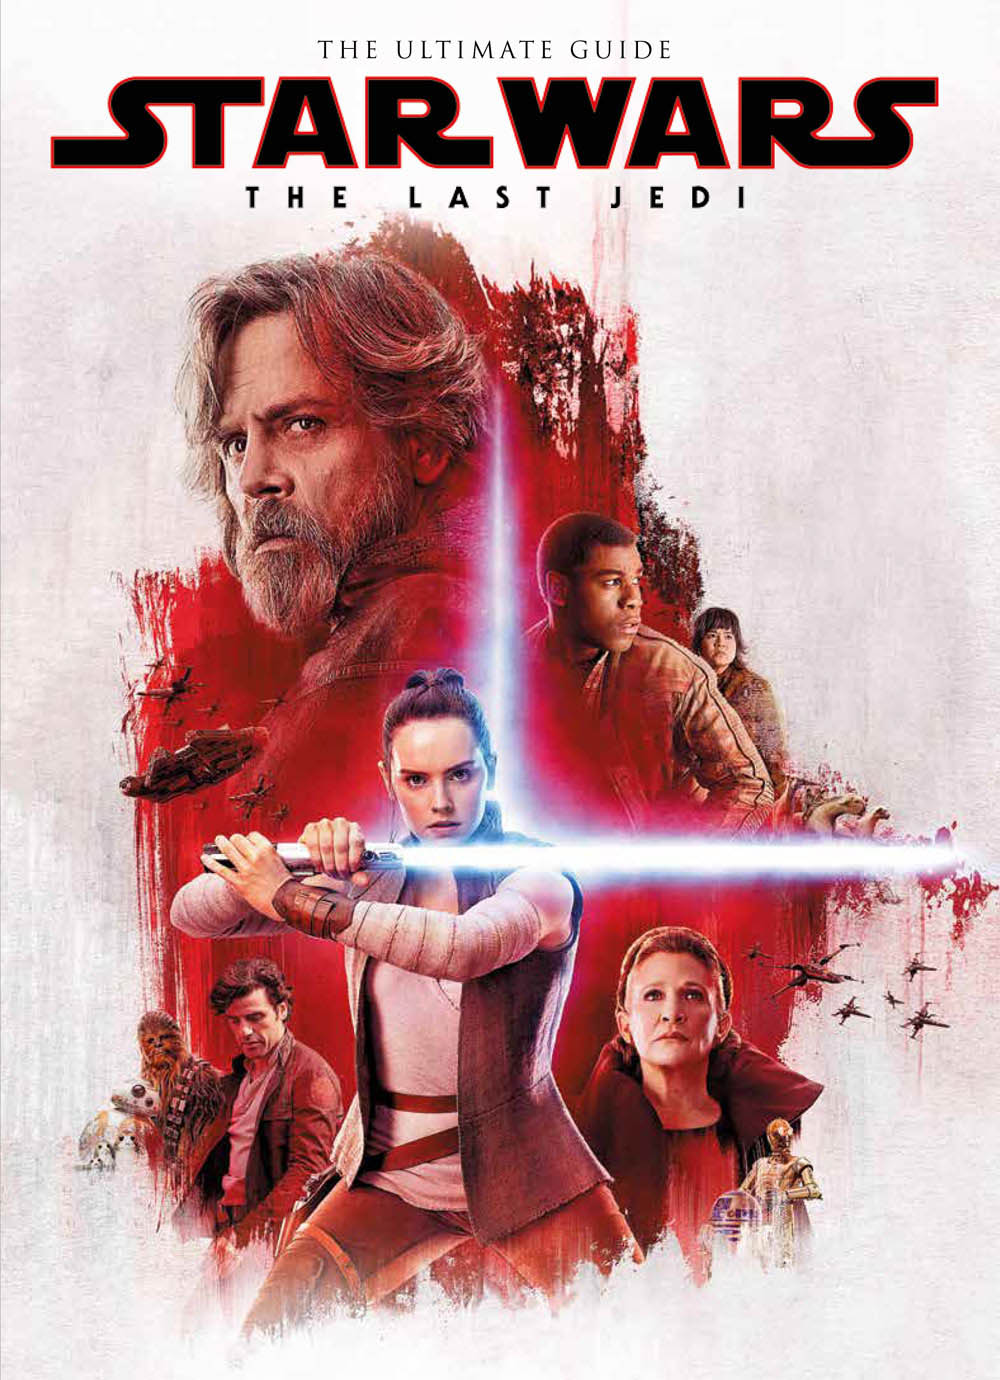 The cover of The Ultimate Guide to Star Wars: The Last Jedi.